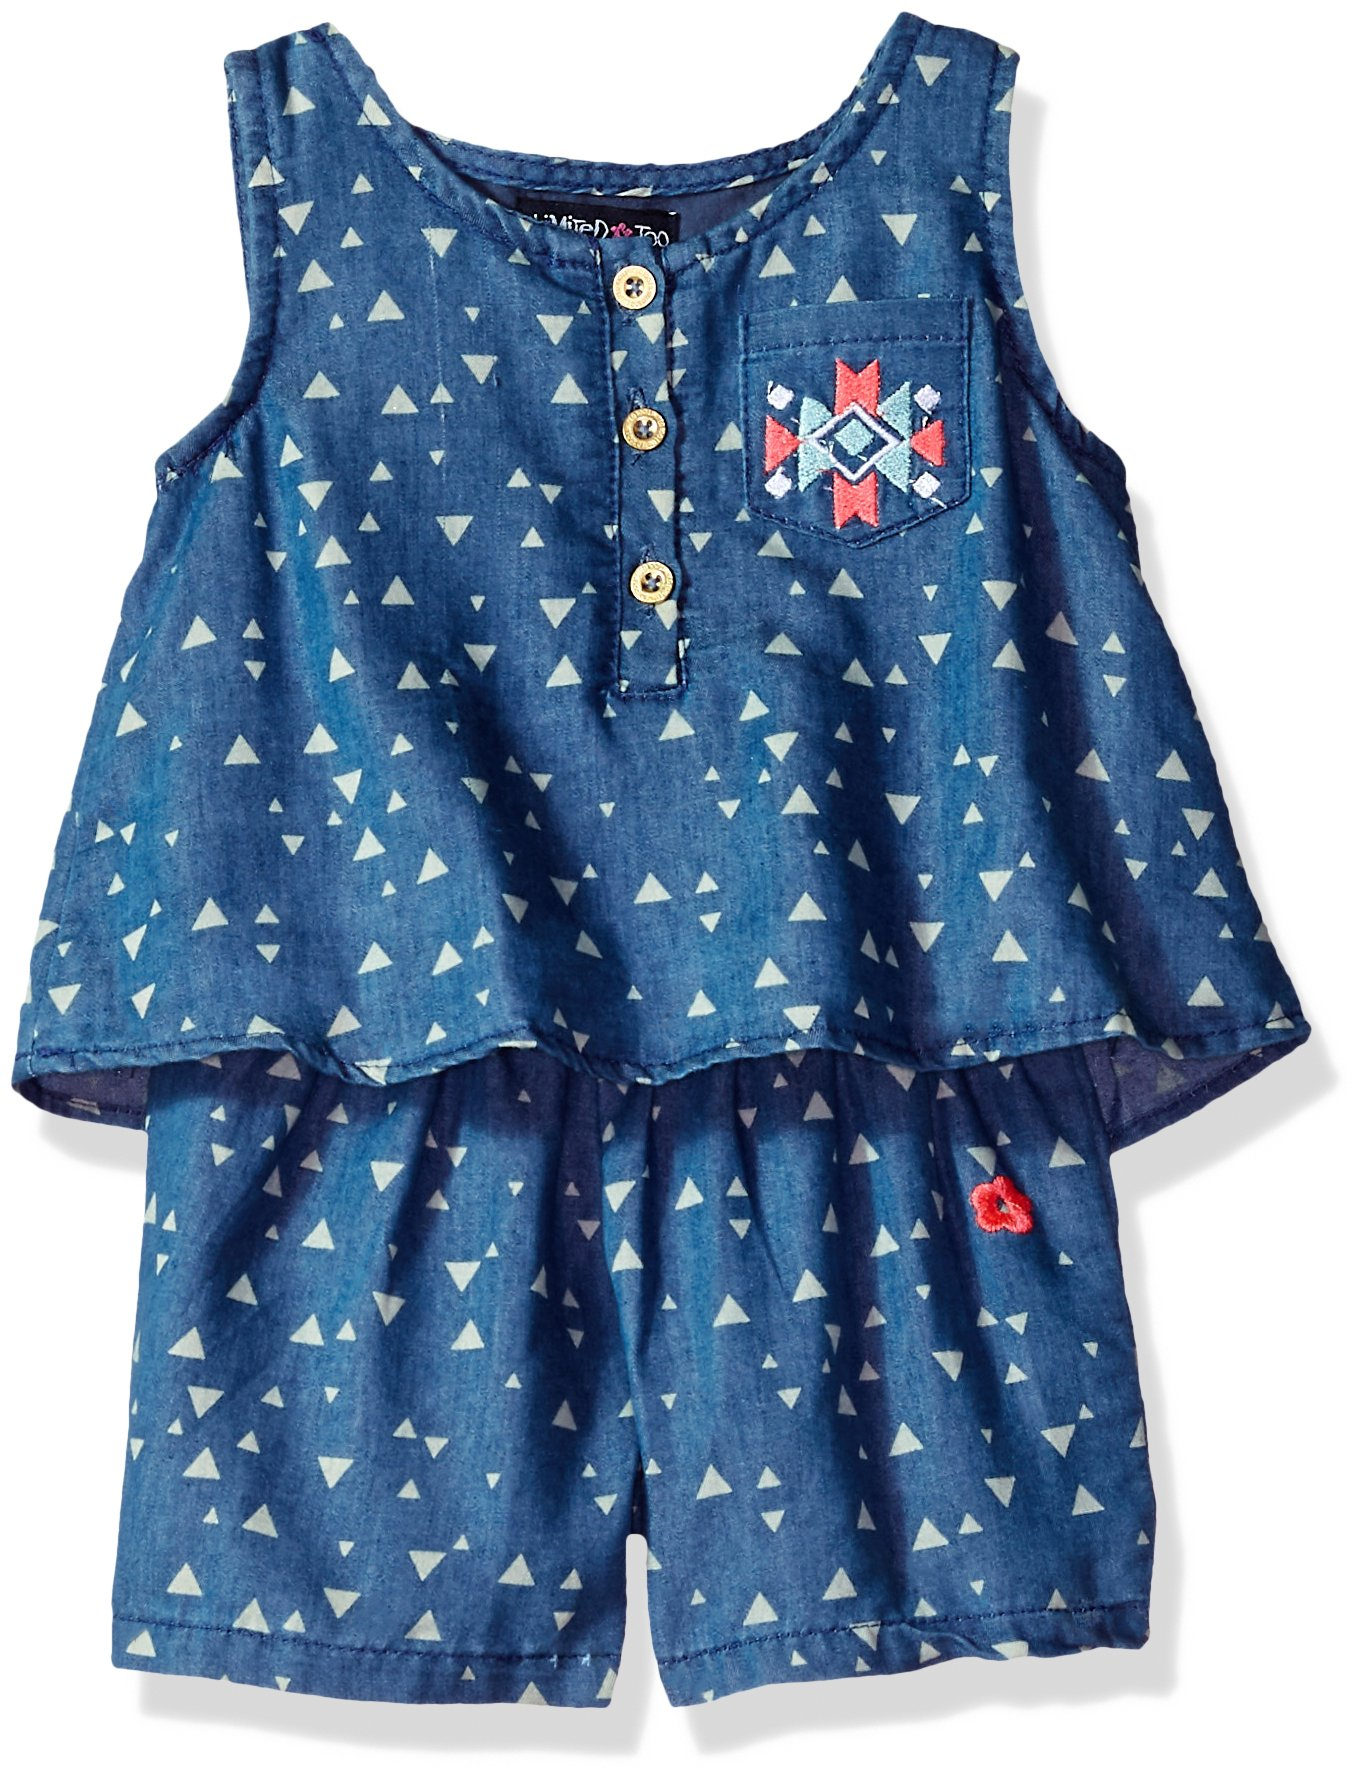 Limited Too Girls' Toddler Romper, Aztec Triangles Medium Blue wash, 2T